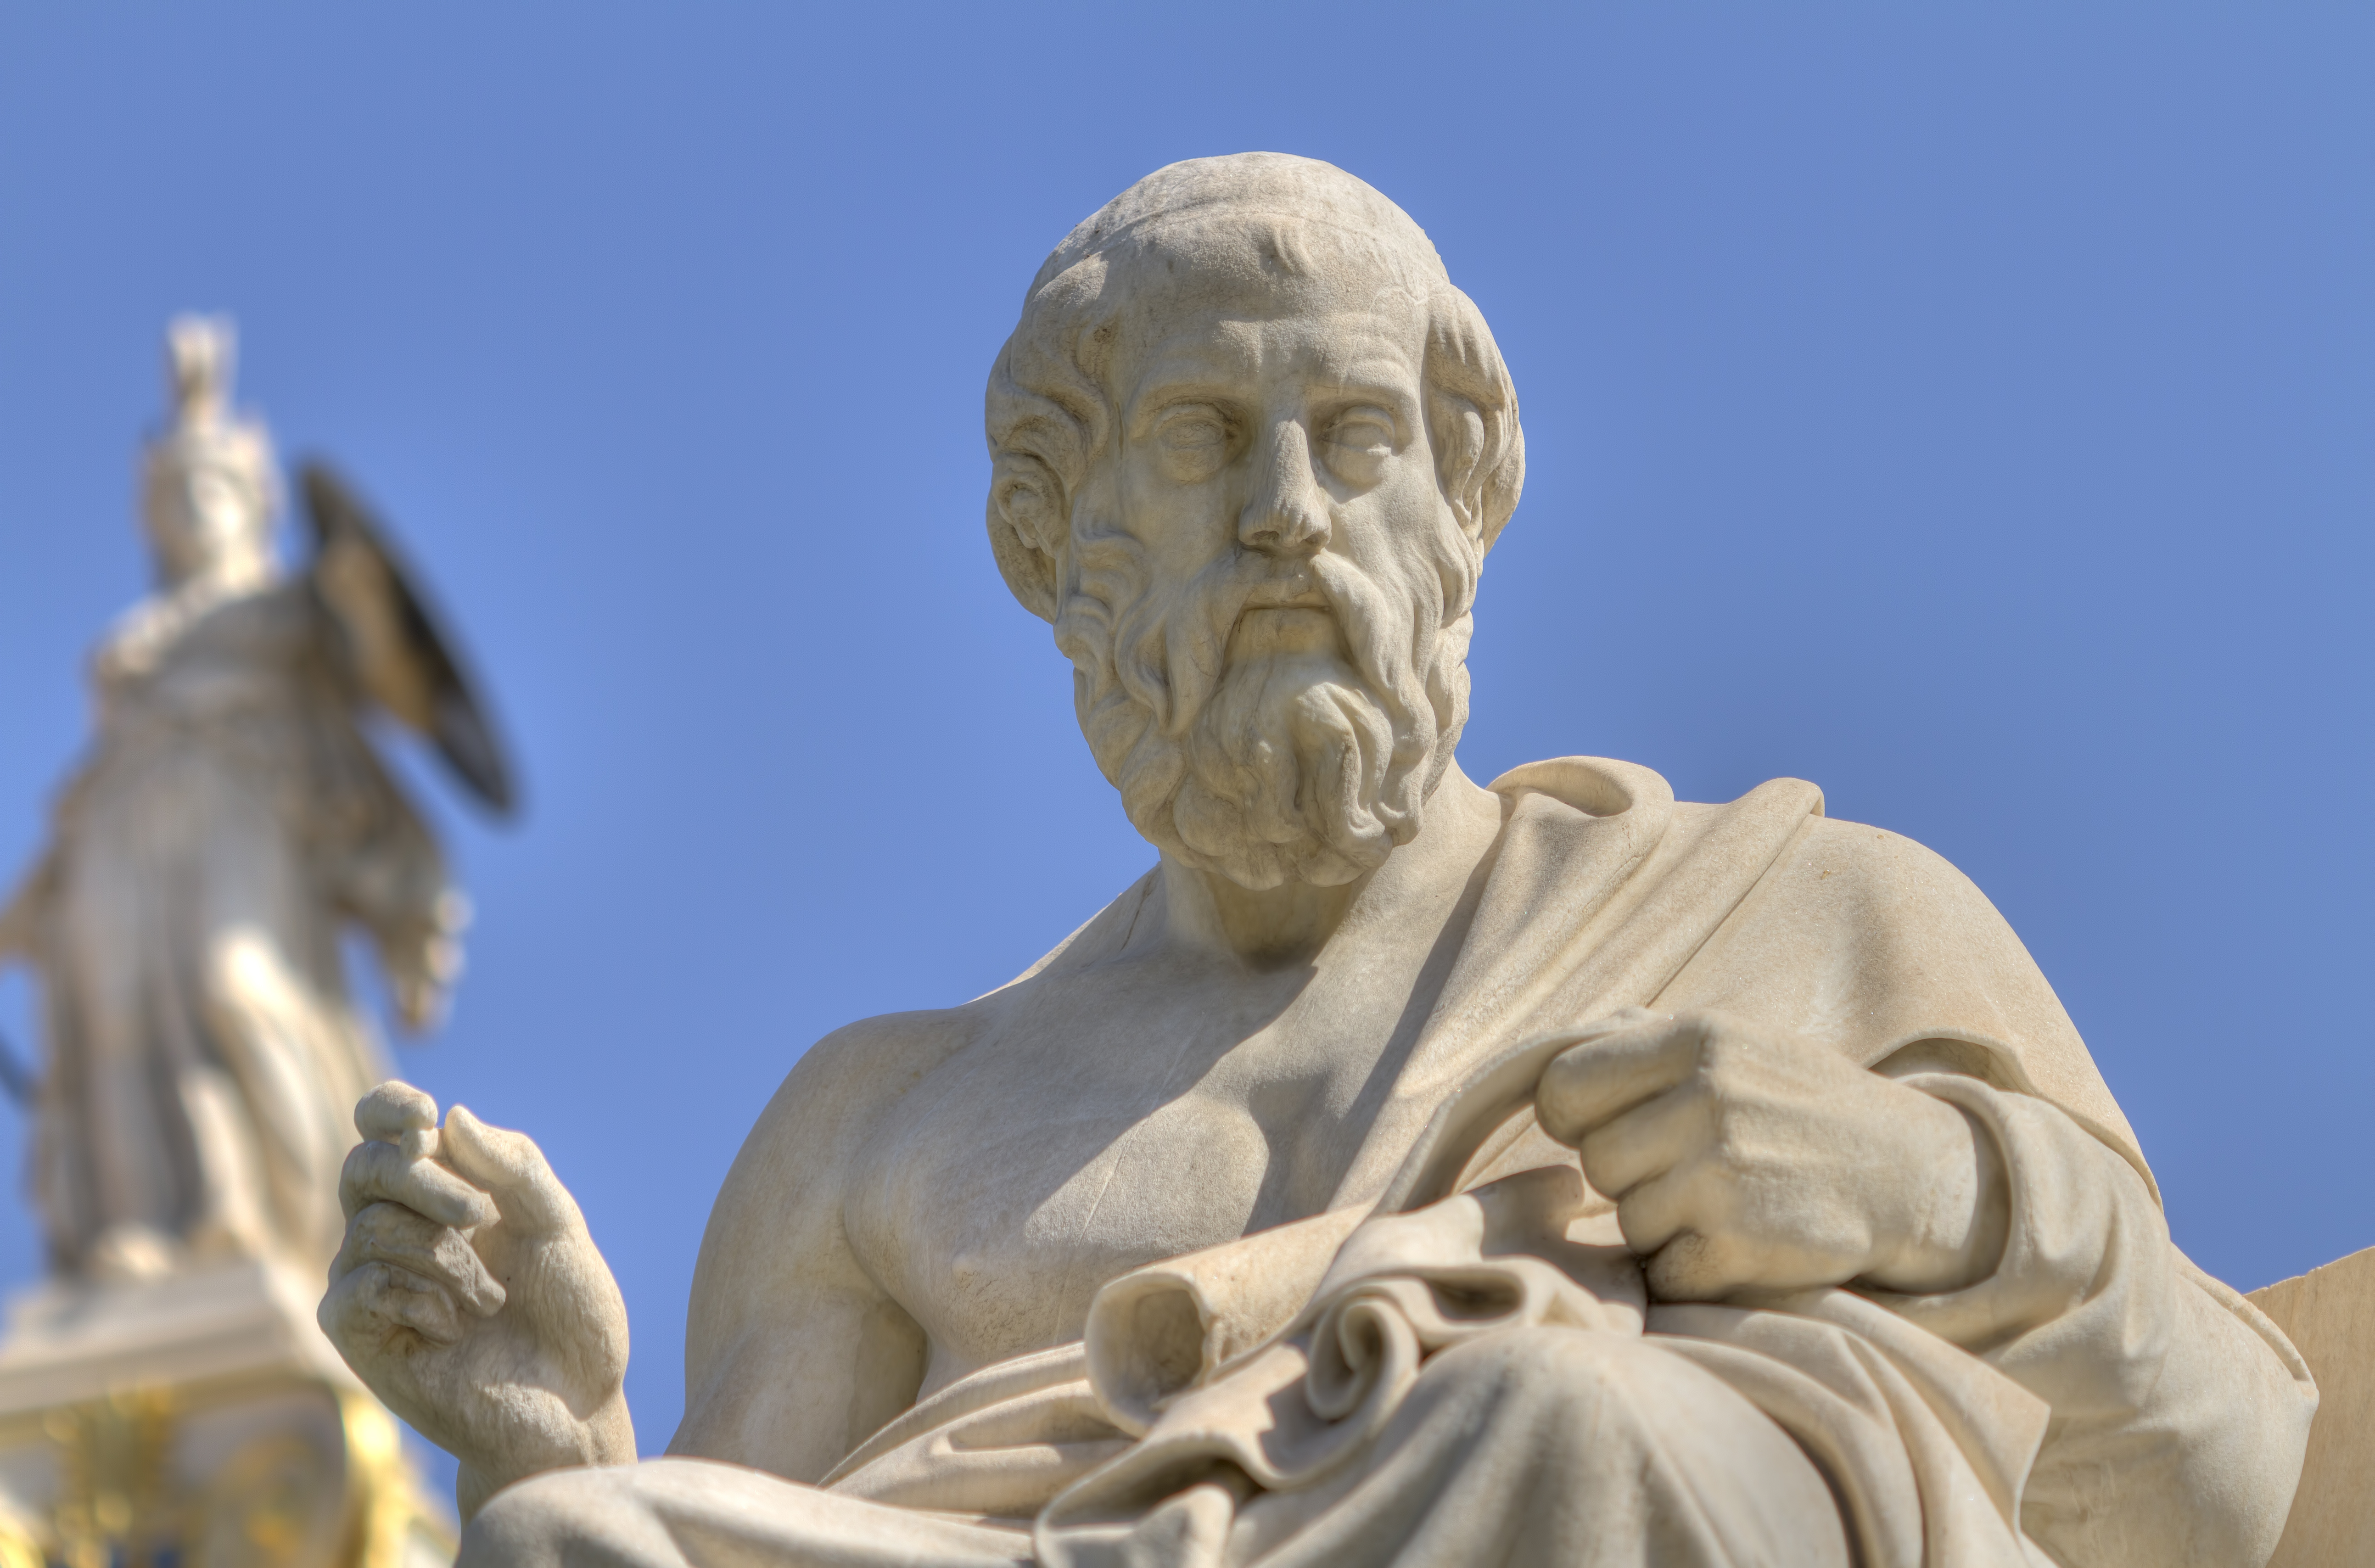 the greek philosophy of man View notes - greek philosophy: platothe most famous of socrates's pupils was an aristocratic young man named plato after the death of socrates, plato carried on much of his former teacher's work and.